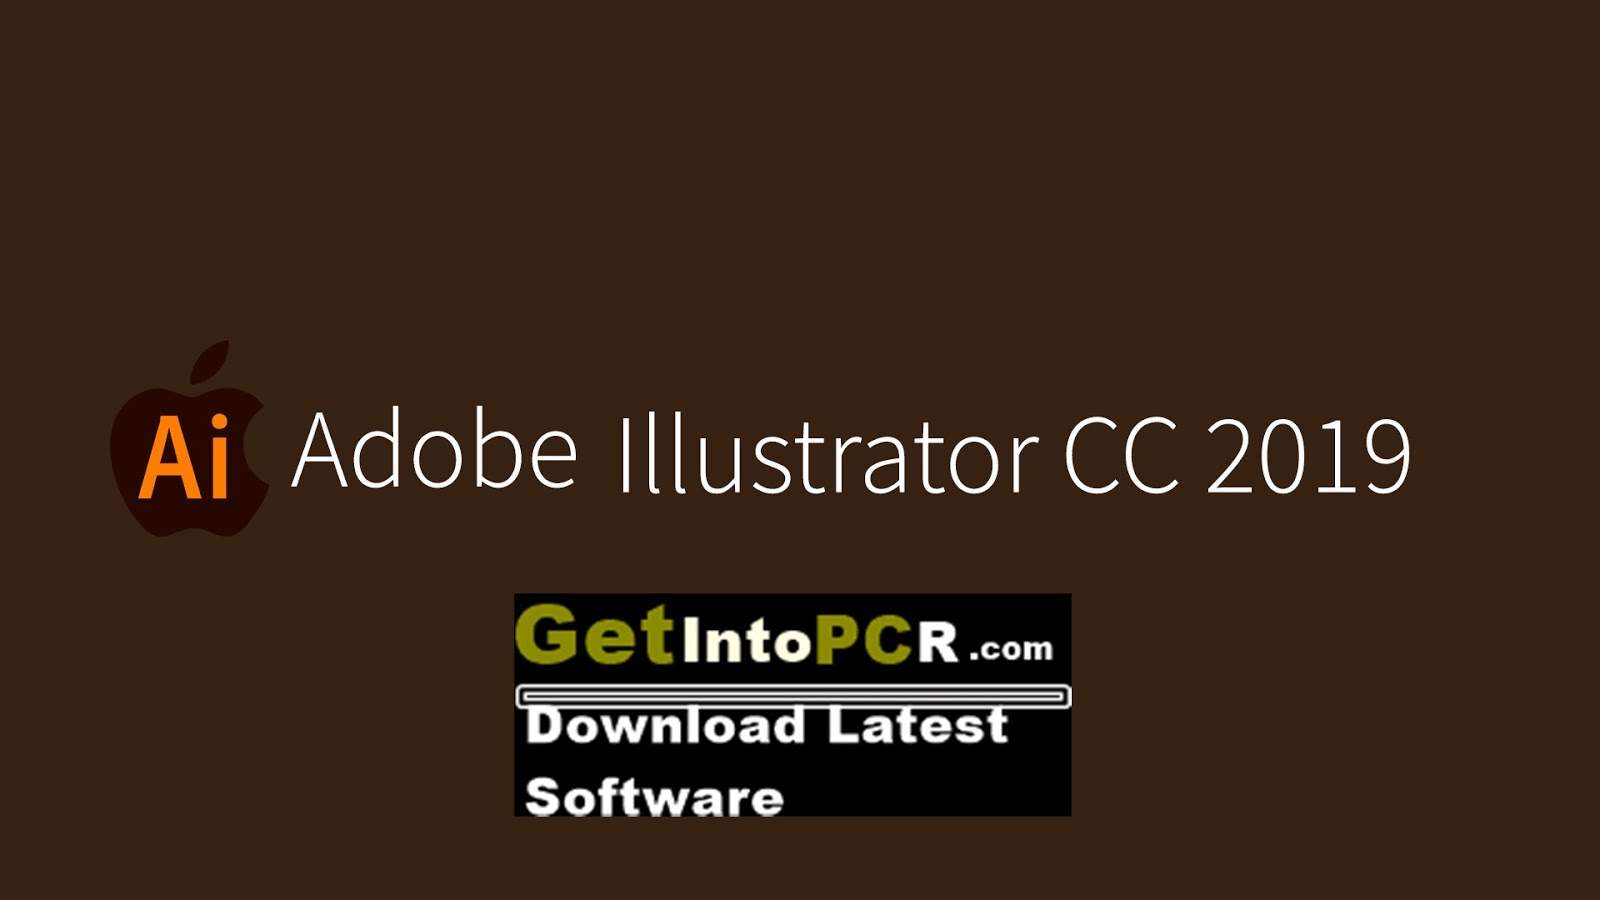 Adobe Illustrator Cc 2019 Free Download Full Version 32 64 Bit Get Into Pc Download Latest Free Software And Apps